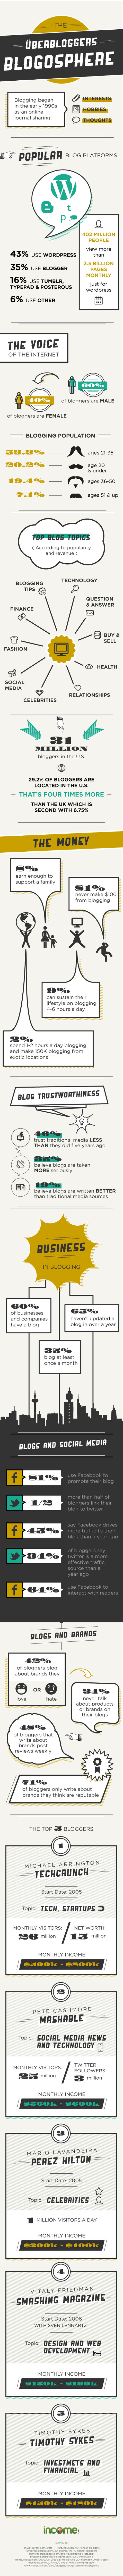 All About #Blogging - #Infographic